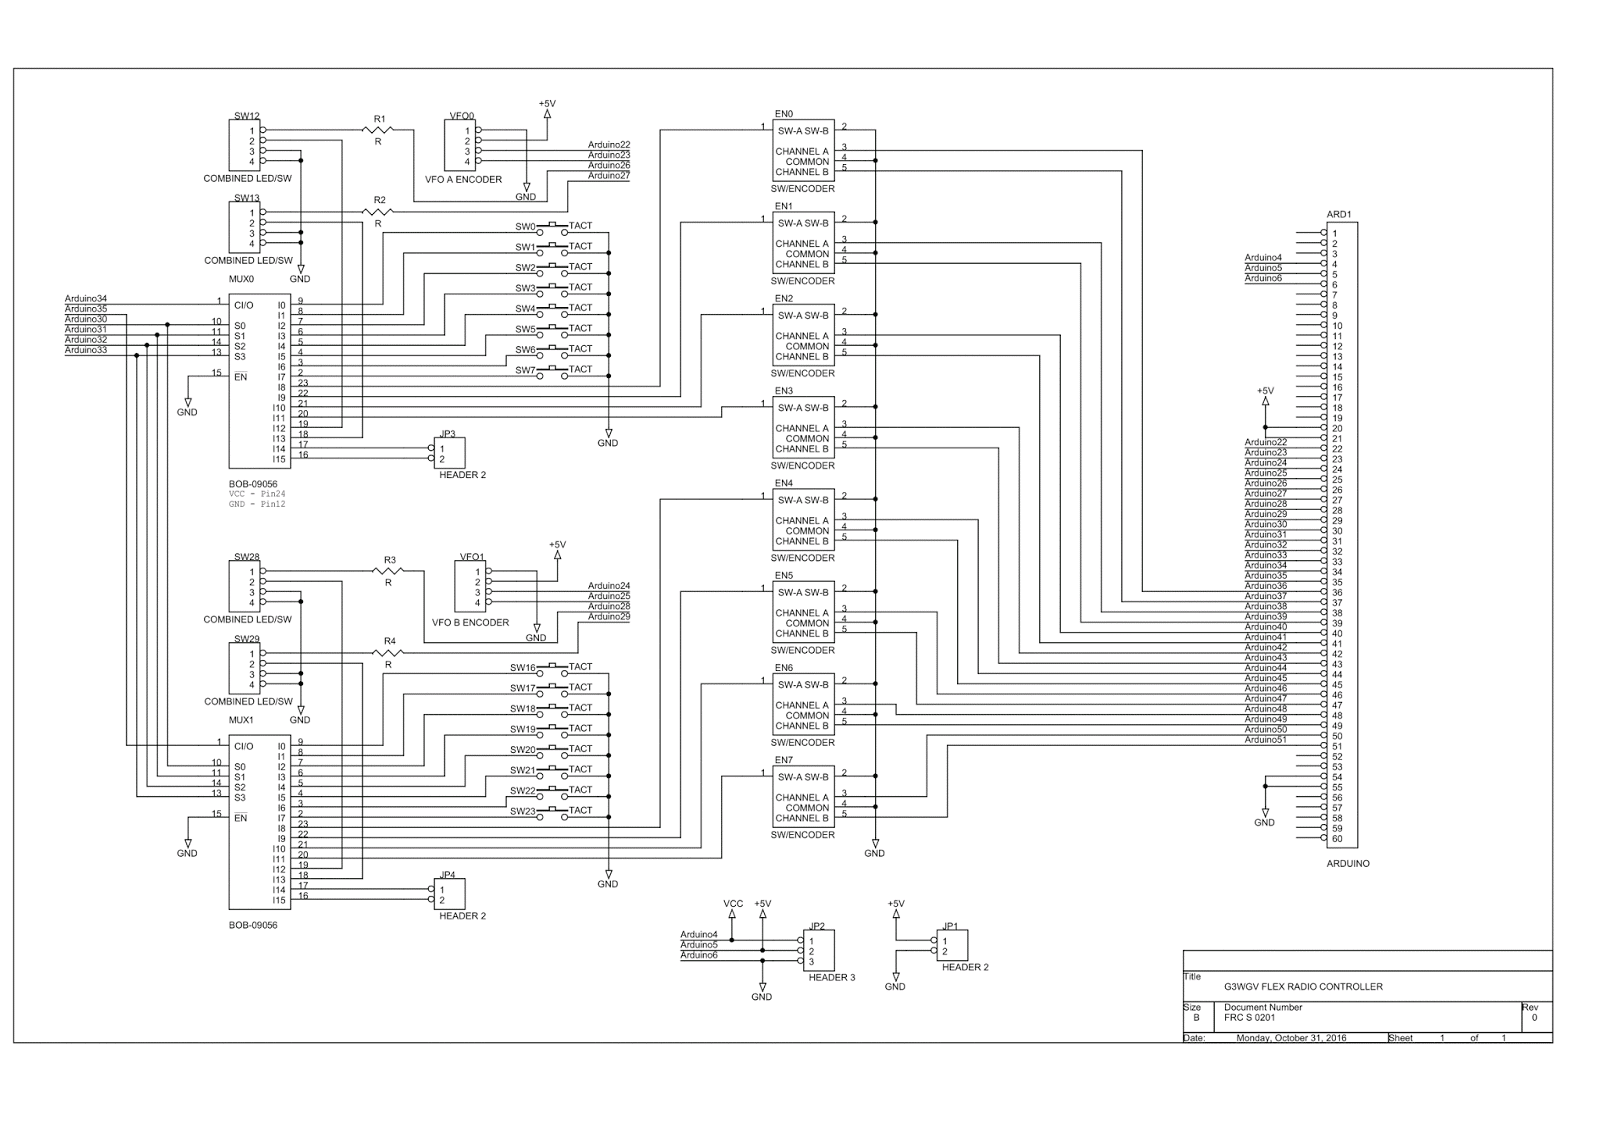 G3wgvs Flex Radio Controller Mk Ii Pcb Design Circuit Diagram My Friend The Designer Has Been Busy On First Task Is To Create A Detailed Which Can Then Be Converted Into